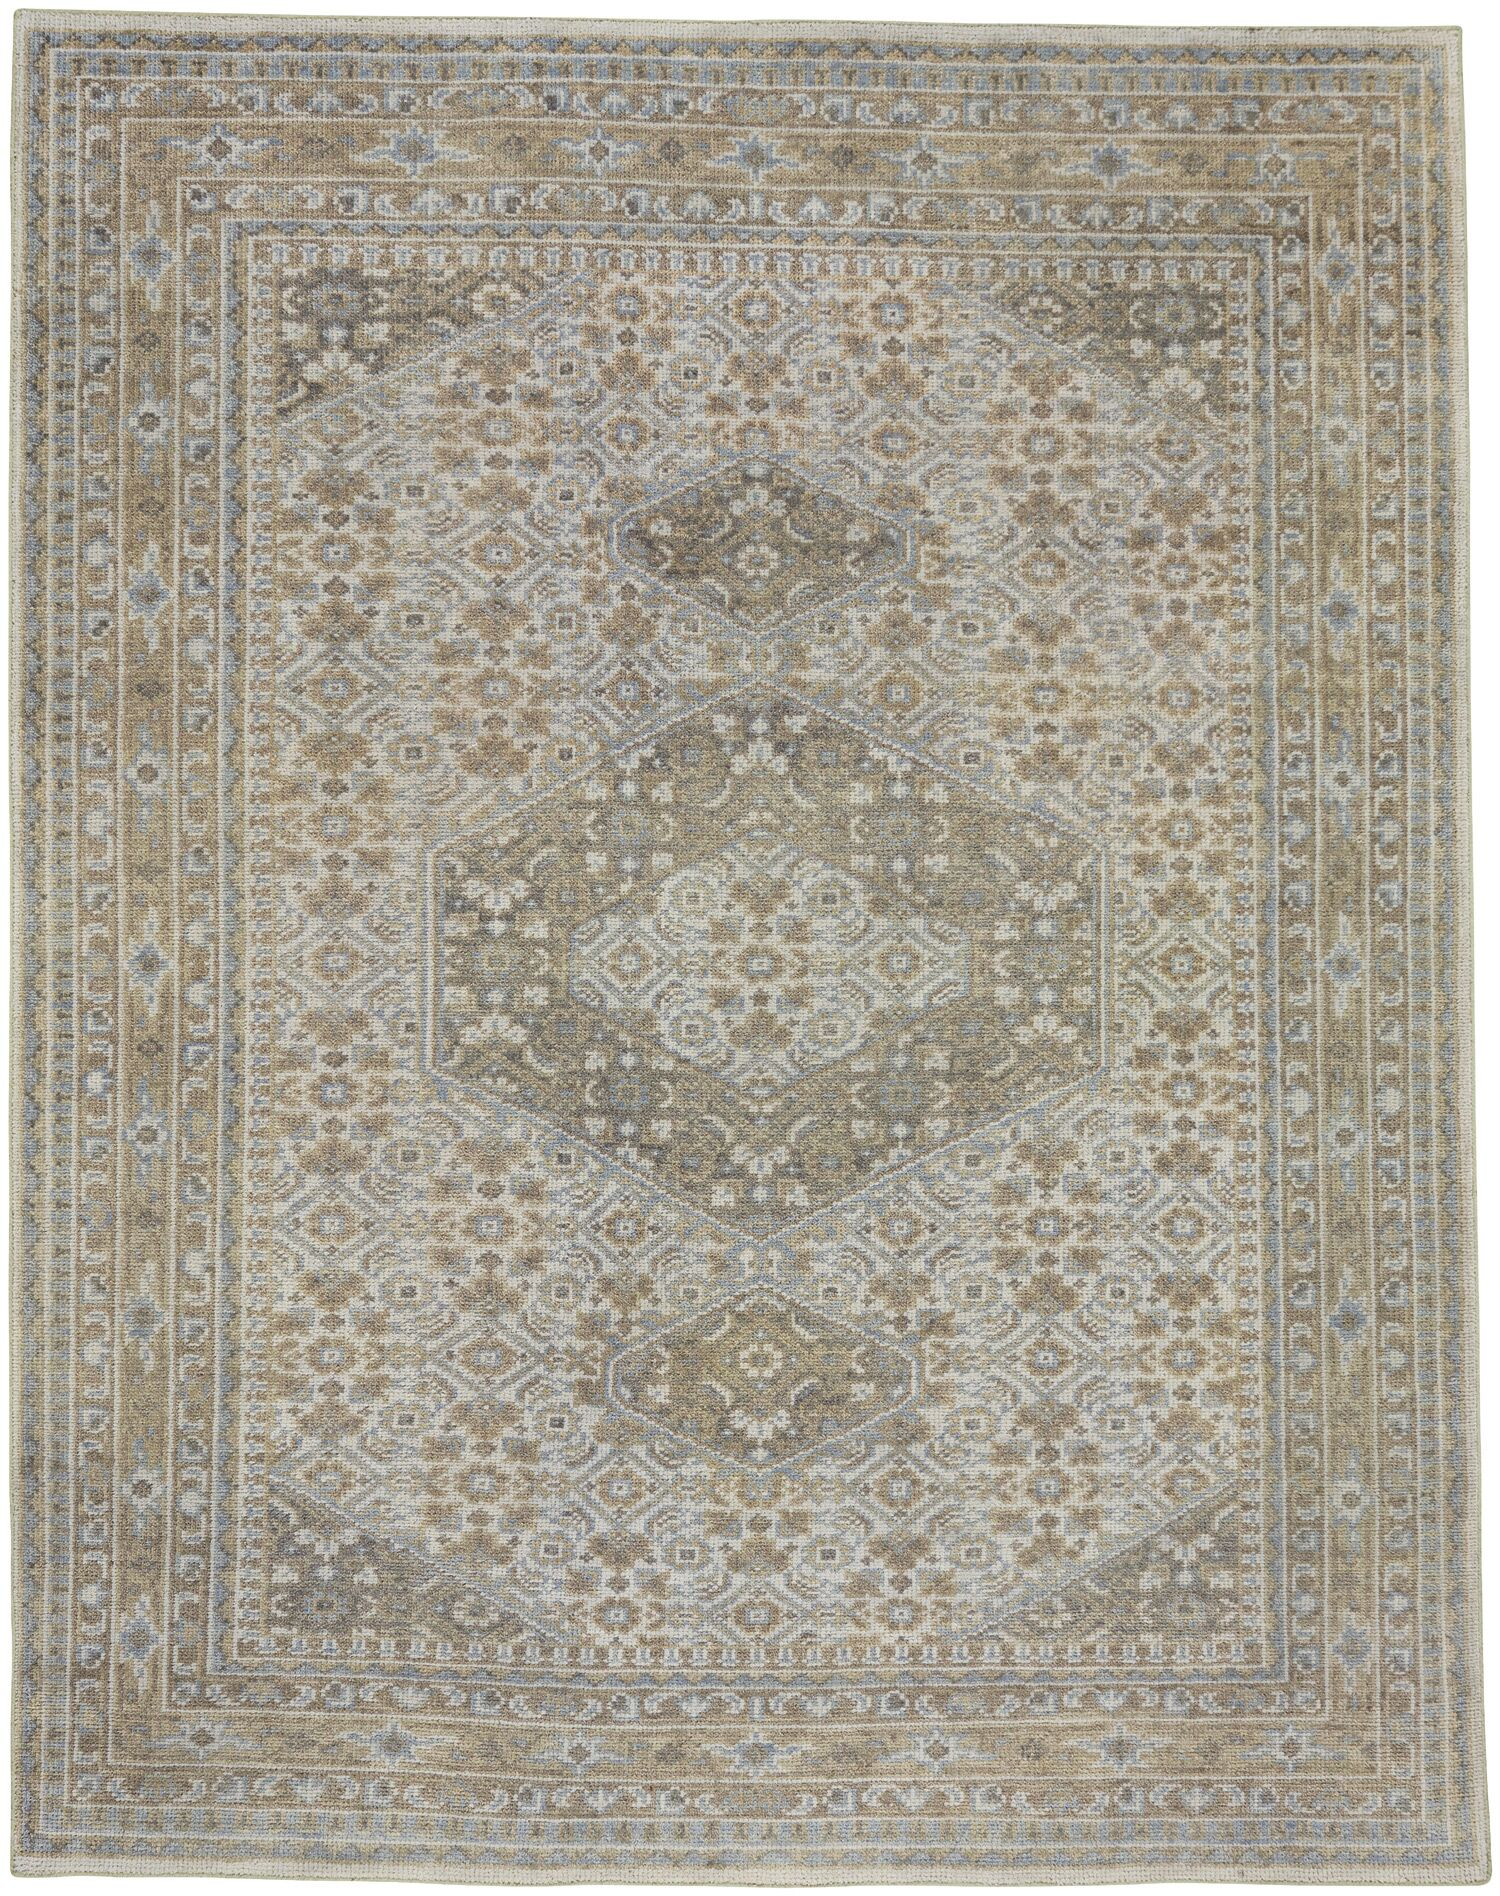 Cannae Hand-Knotted Light Tan/Pale Blue Area Rug Rug Size: 8' x 10'